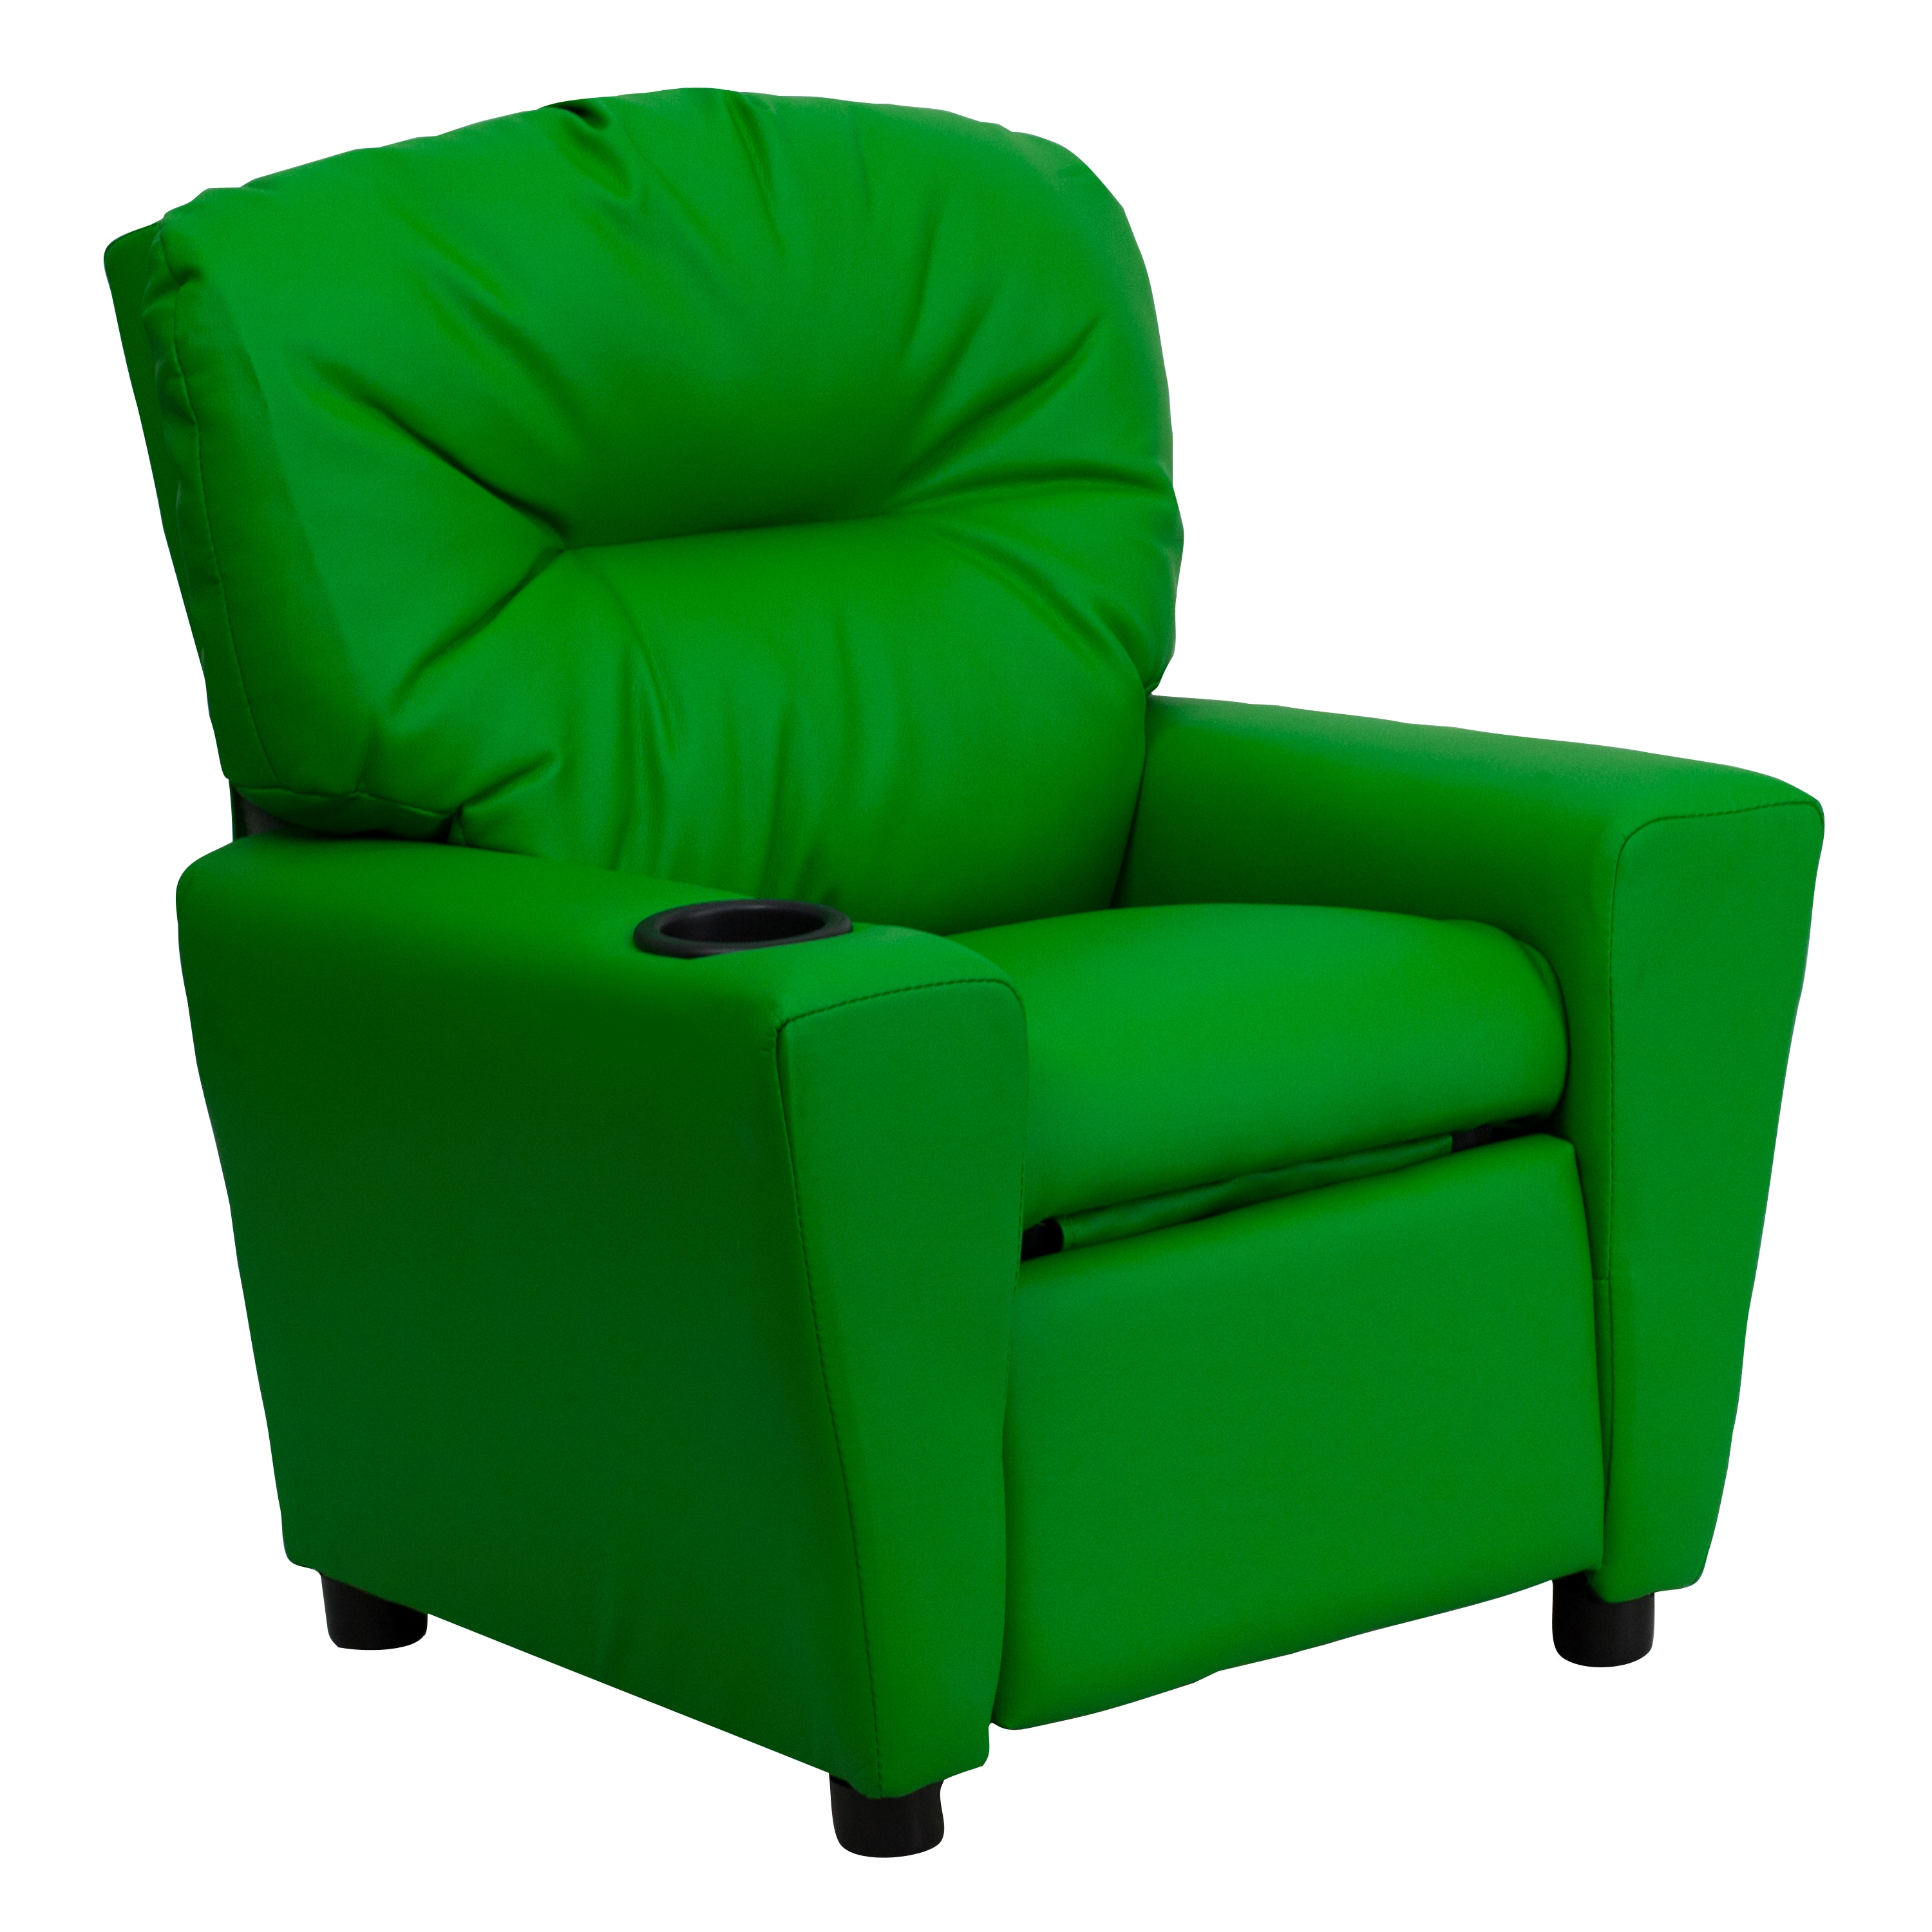 floor gaming rocking chair executive leather shop flash furniture contemporary green vinyl kids recliner with cup holder - free shipping ...